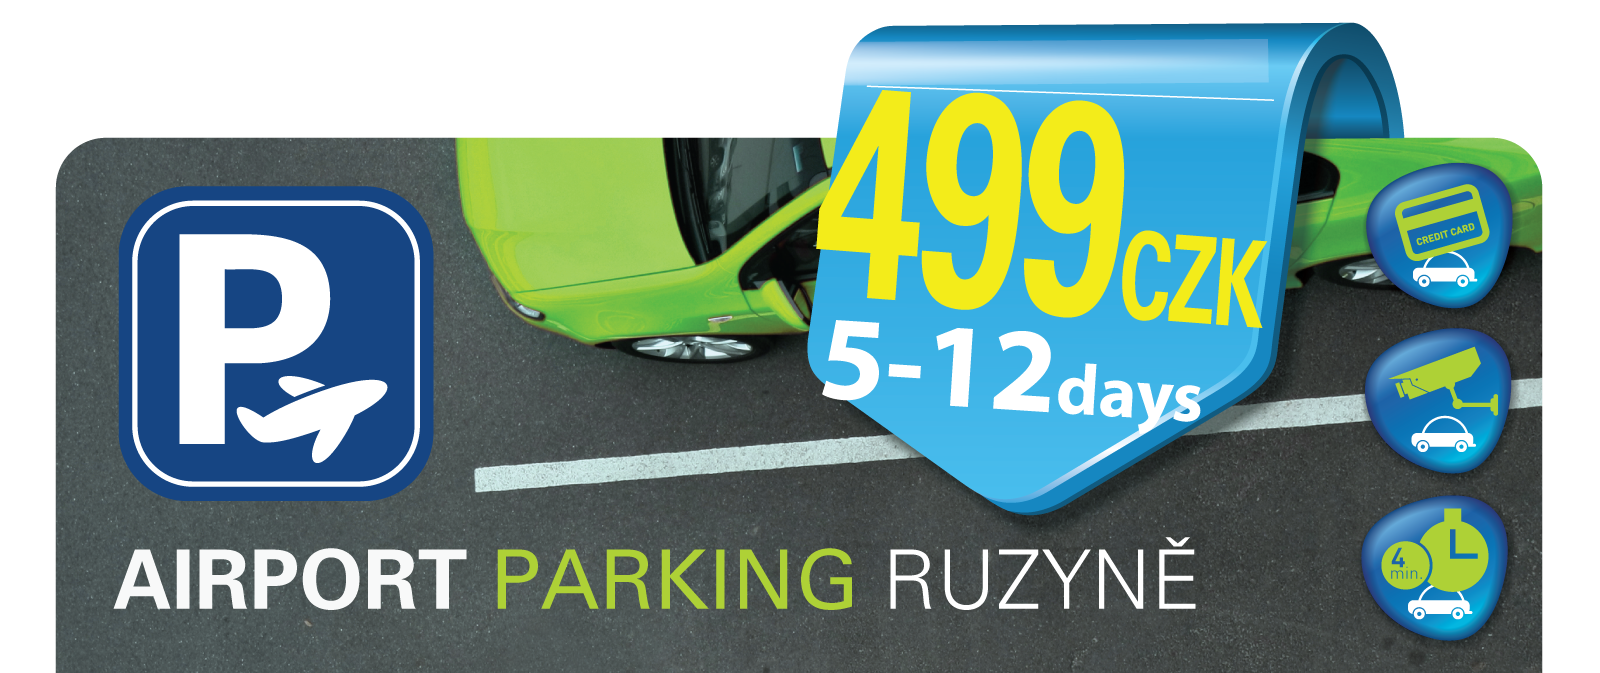 AIRPORT PARKING RUZYNĚ Logo